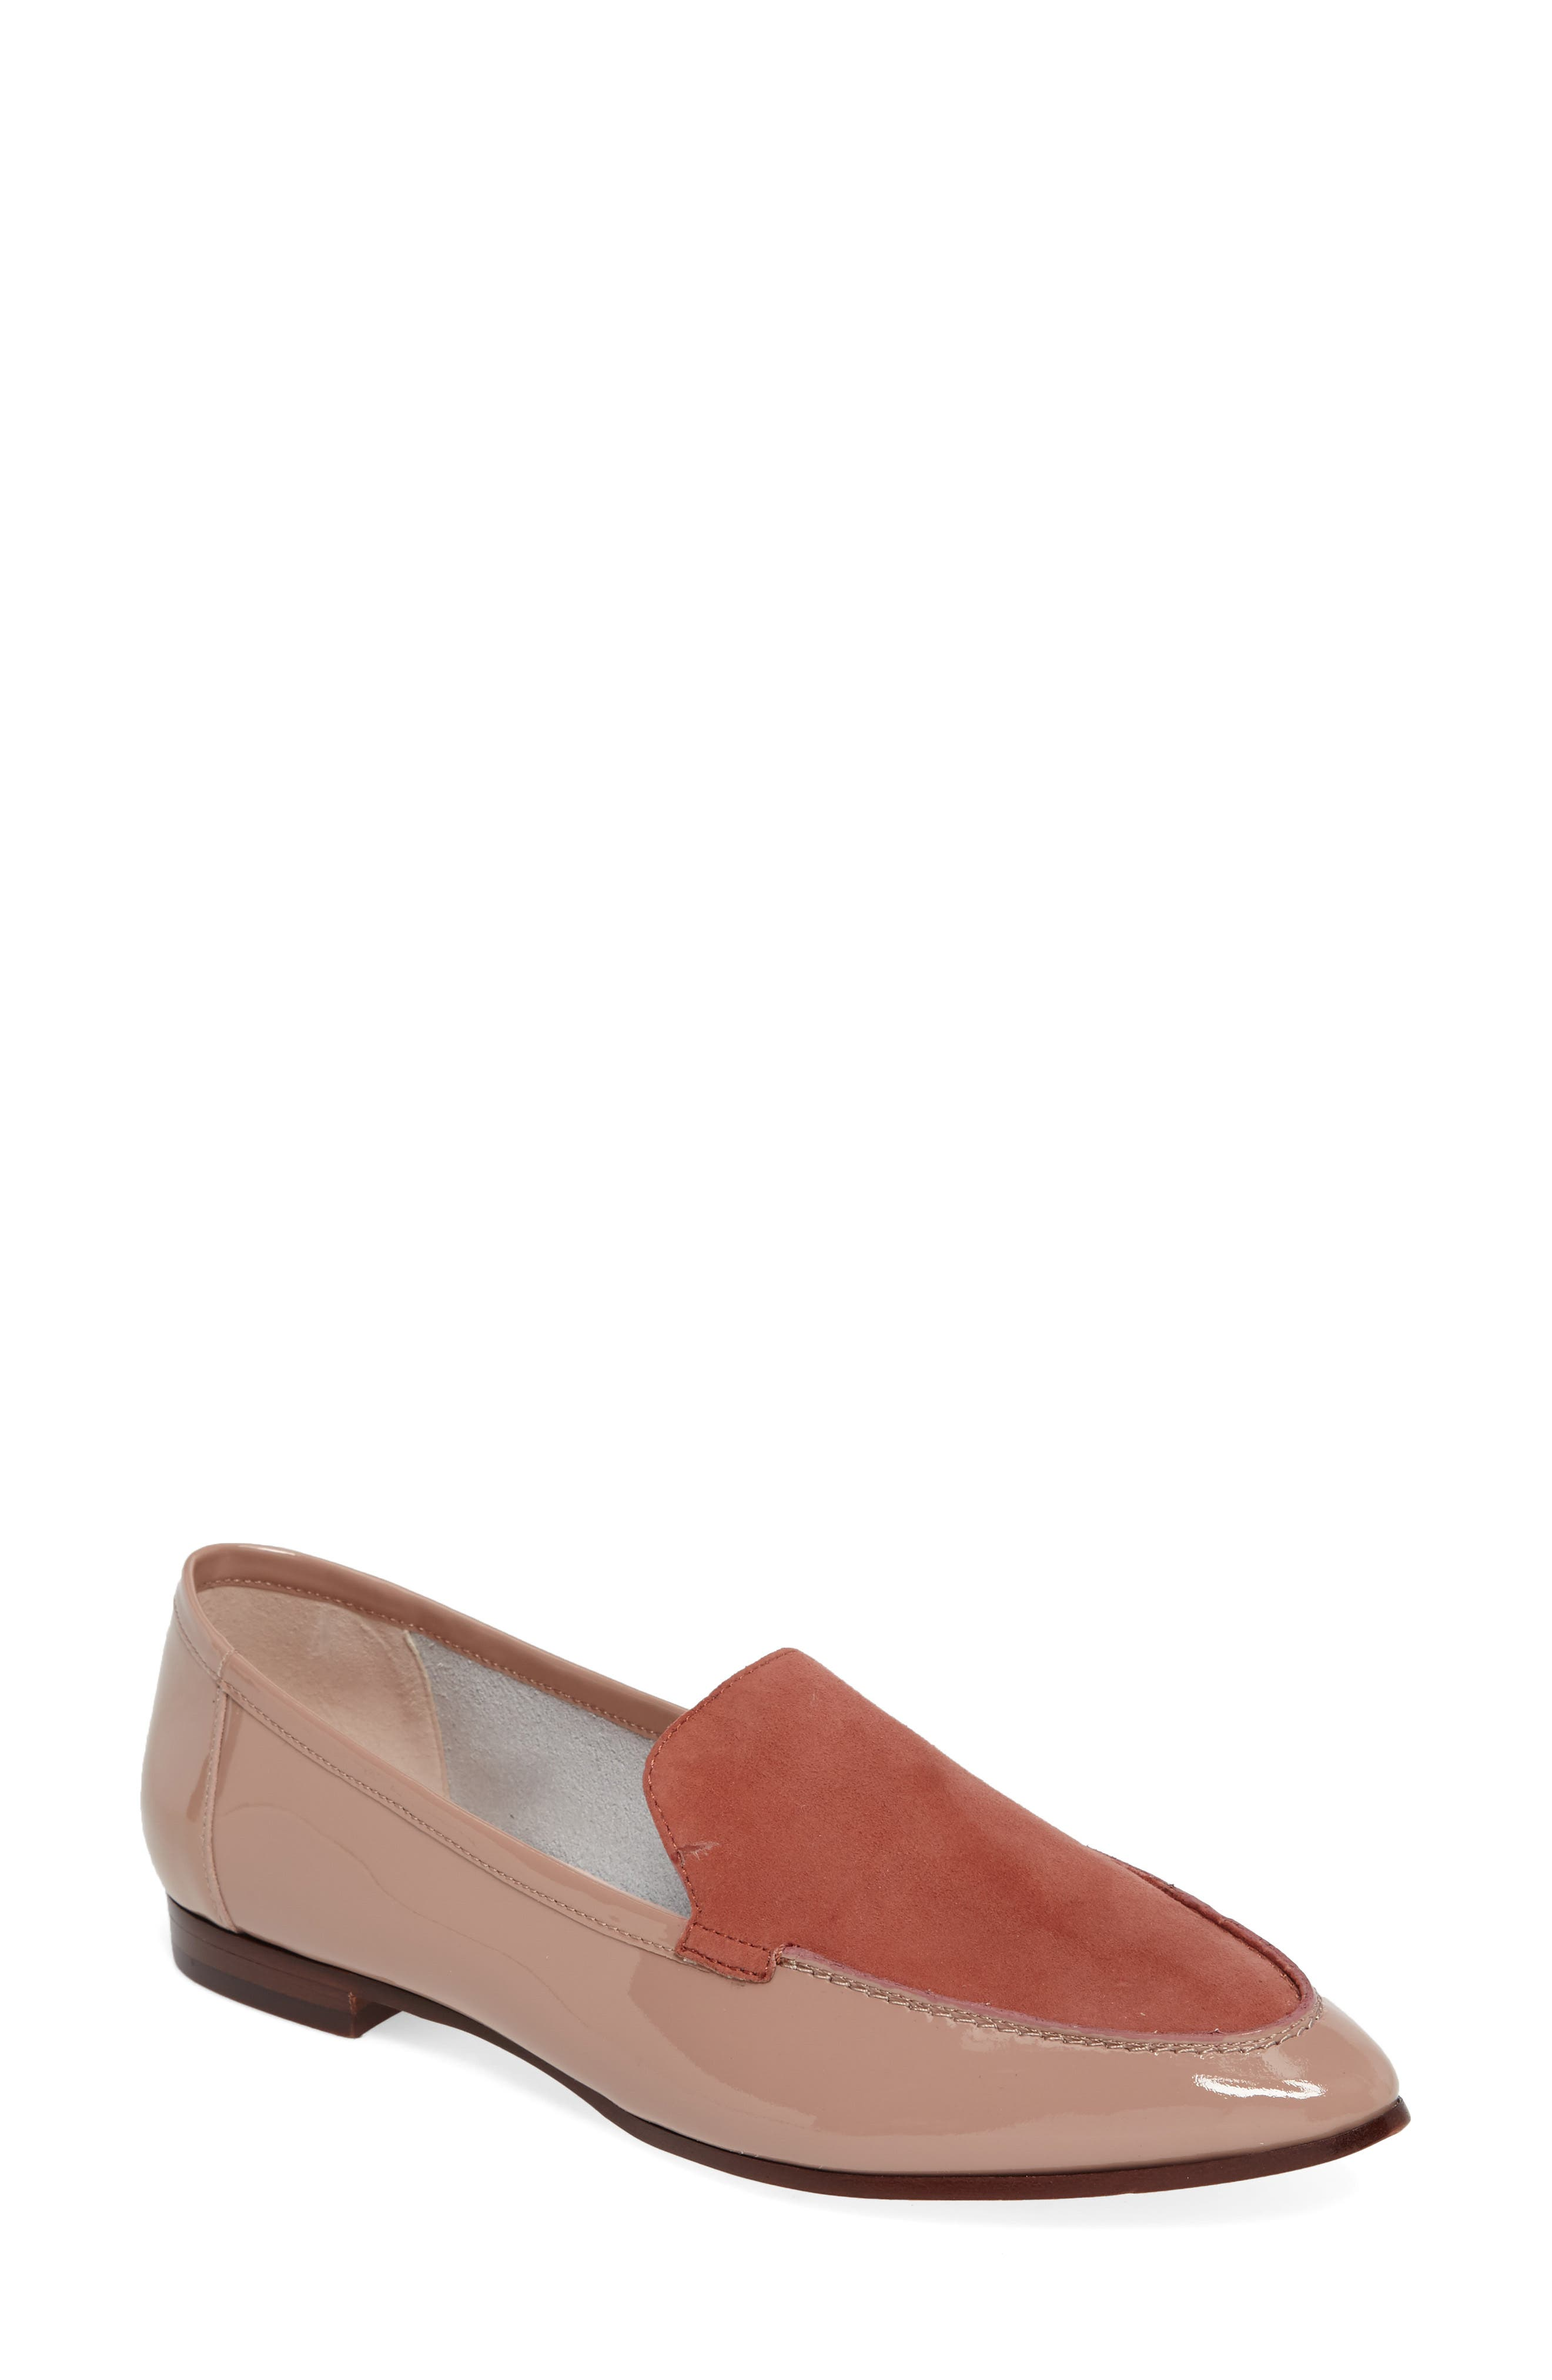 KATE SPADE NEW YORK 'carima' loafer flat